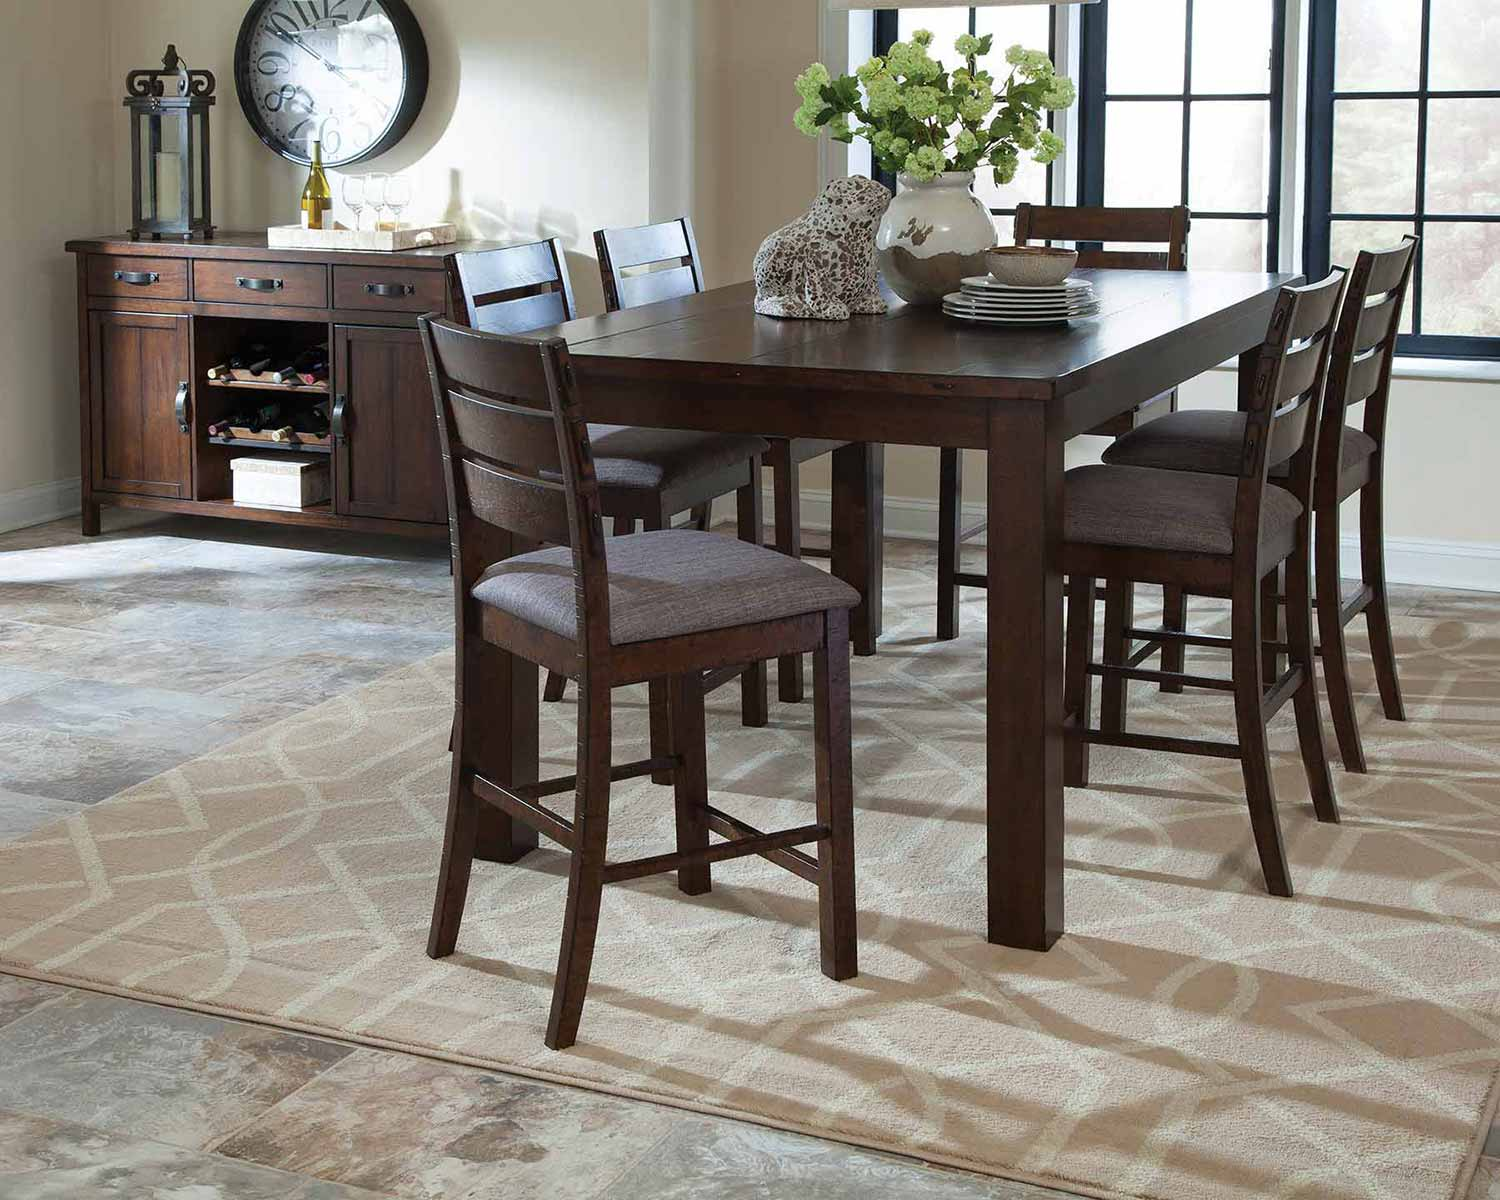 Coaster Wiltshire Counter Height Dining Set - Rustic Pecan